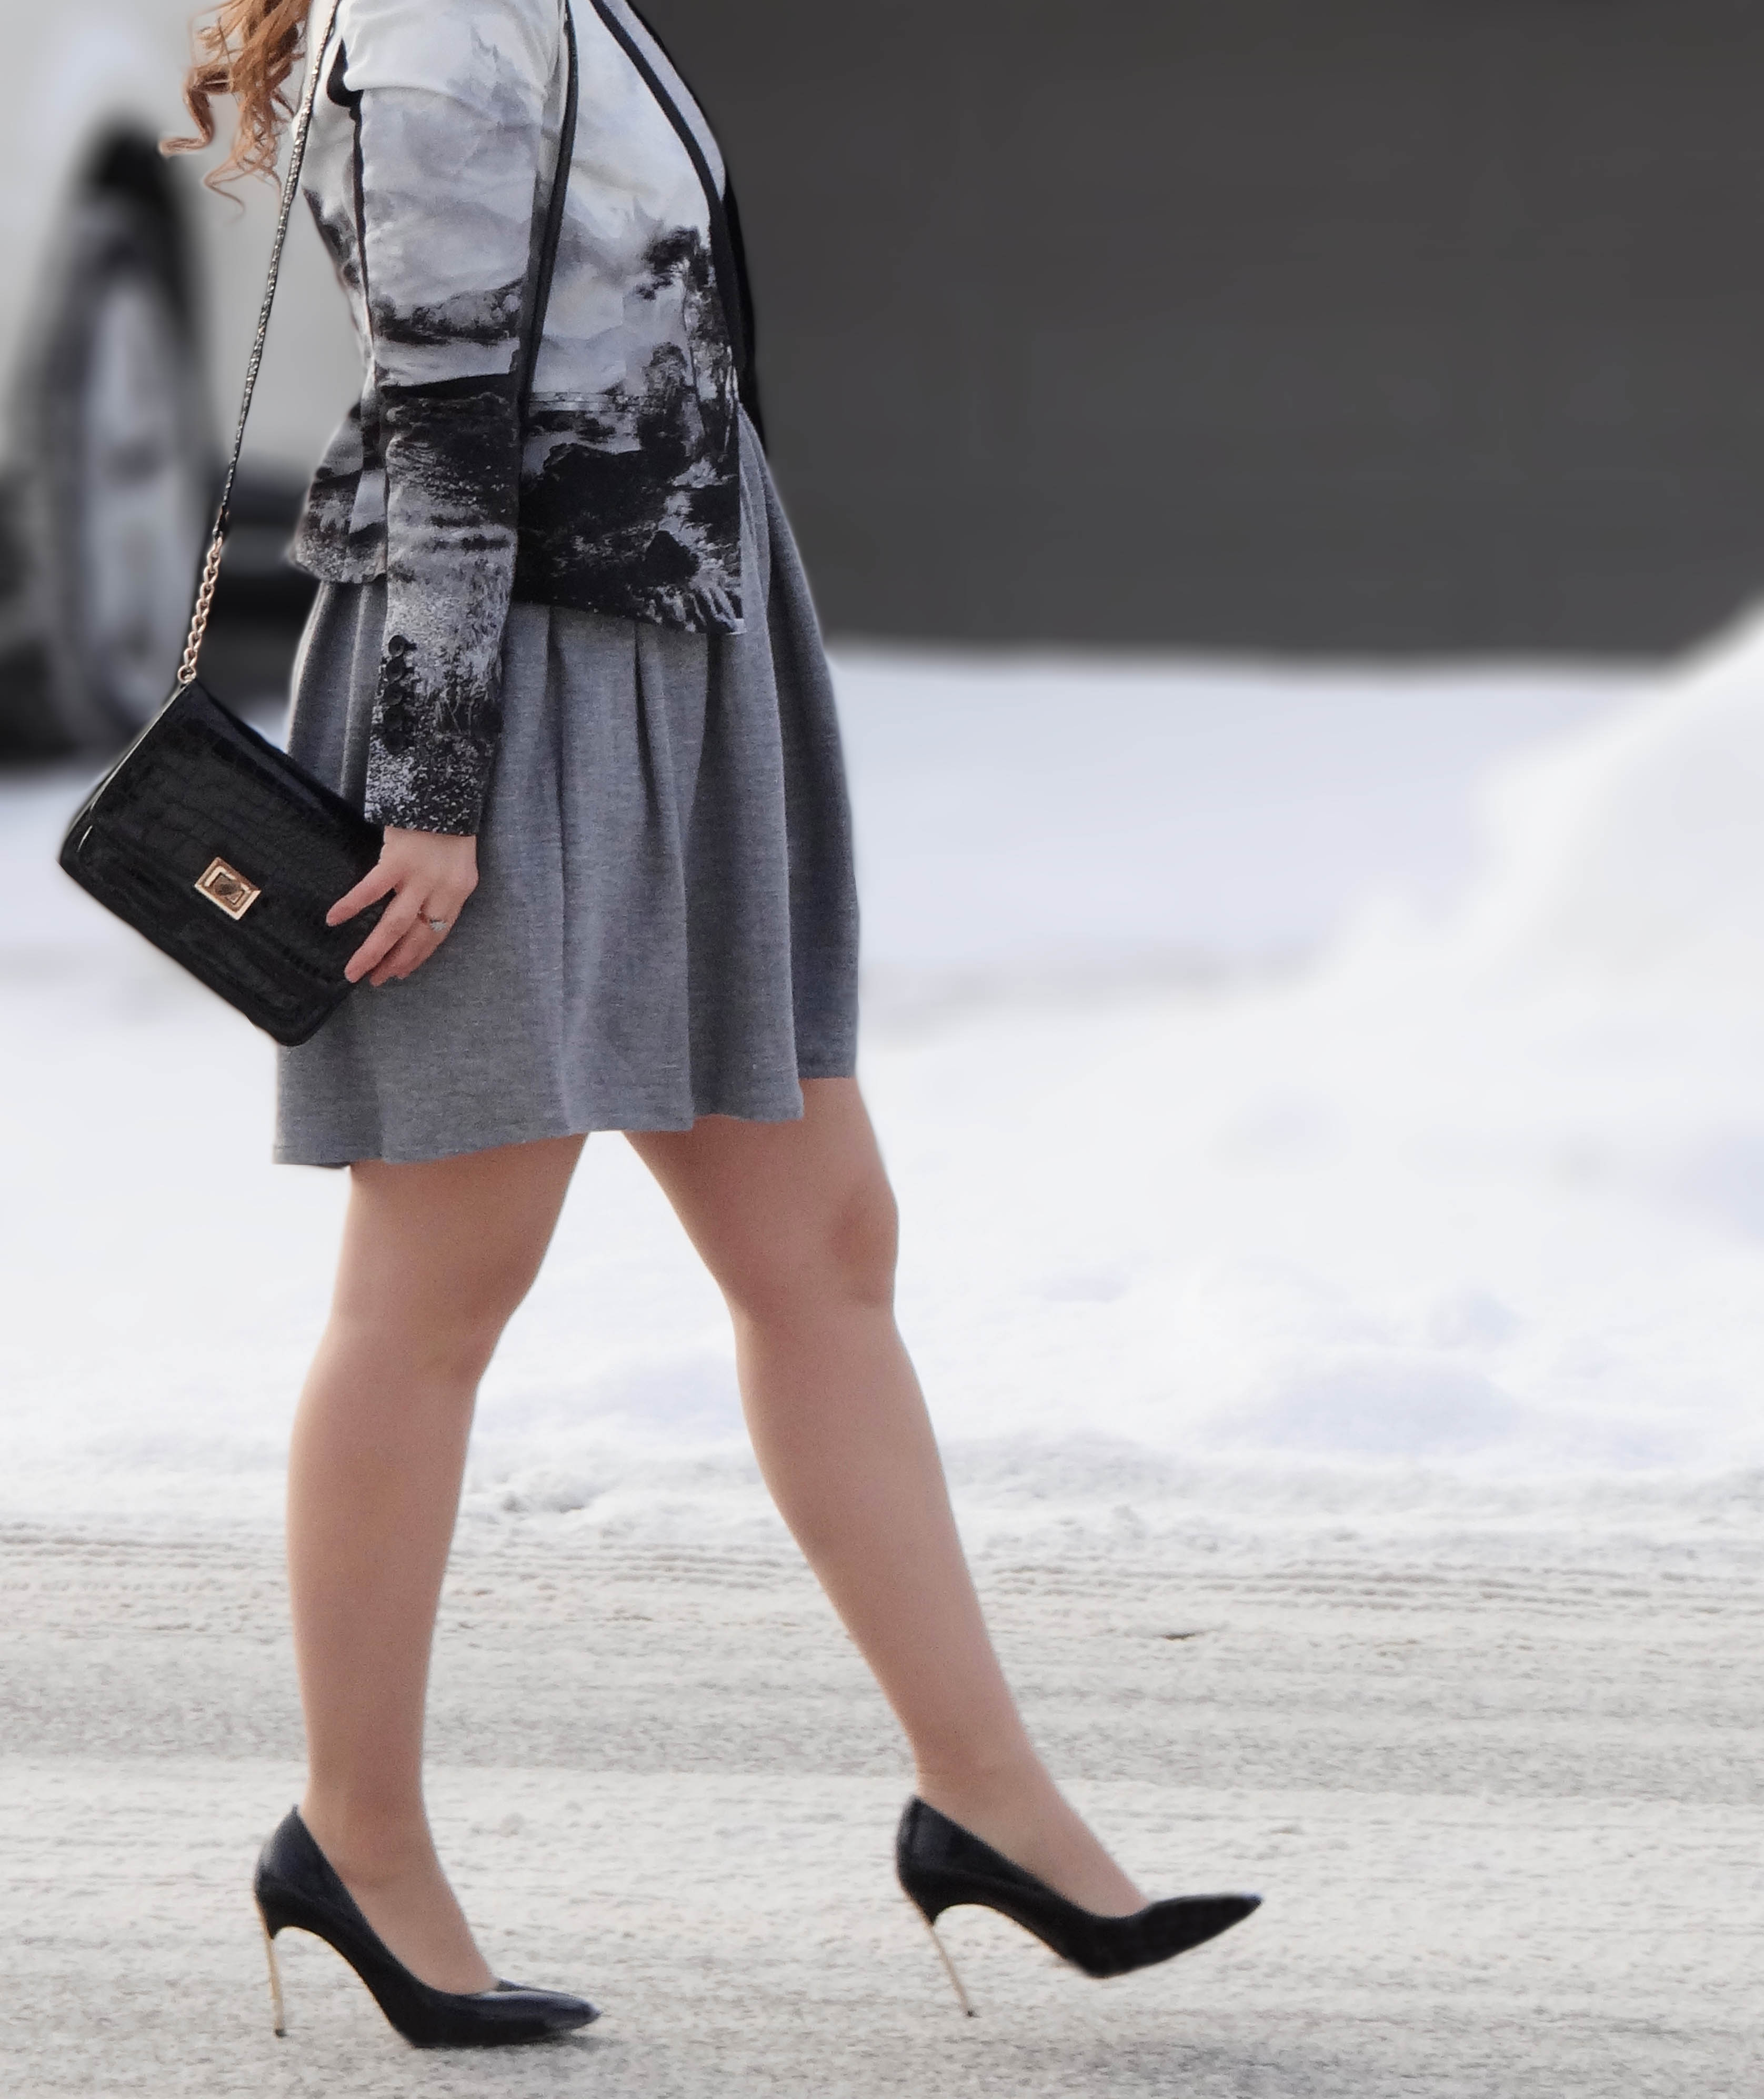 monochrome fashion, cool blazers, high fashion, bcbg maxazria,life and style, fashion blog, fashion, style, outfit, fashion blogger, style blogger, outfit ideas, fall style, shopping, accessorize, street style, fashion styles, Victoria Simpson, A Side of Vogue, bloggers from Toronto Canada